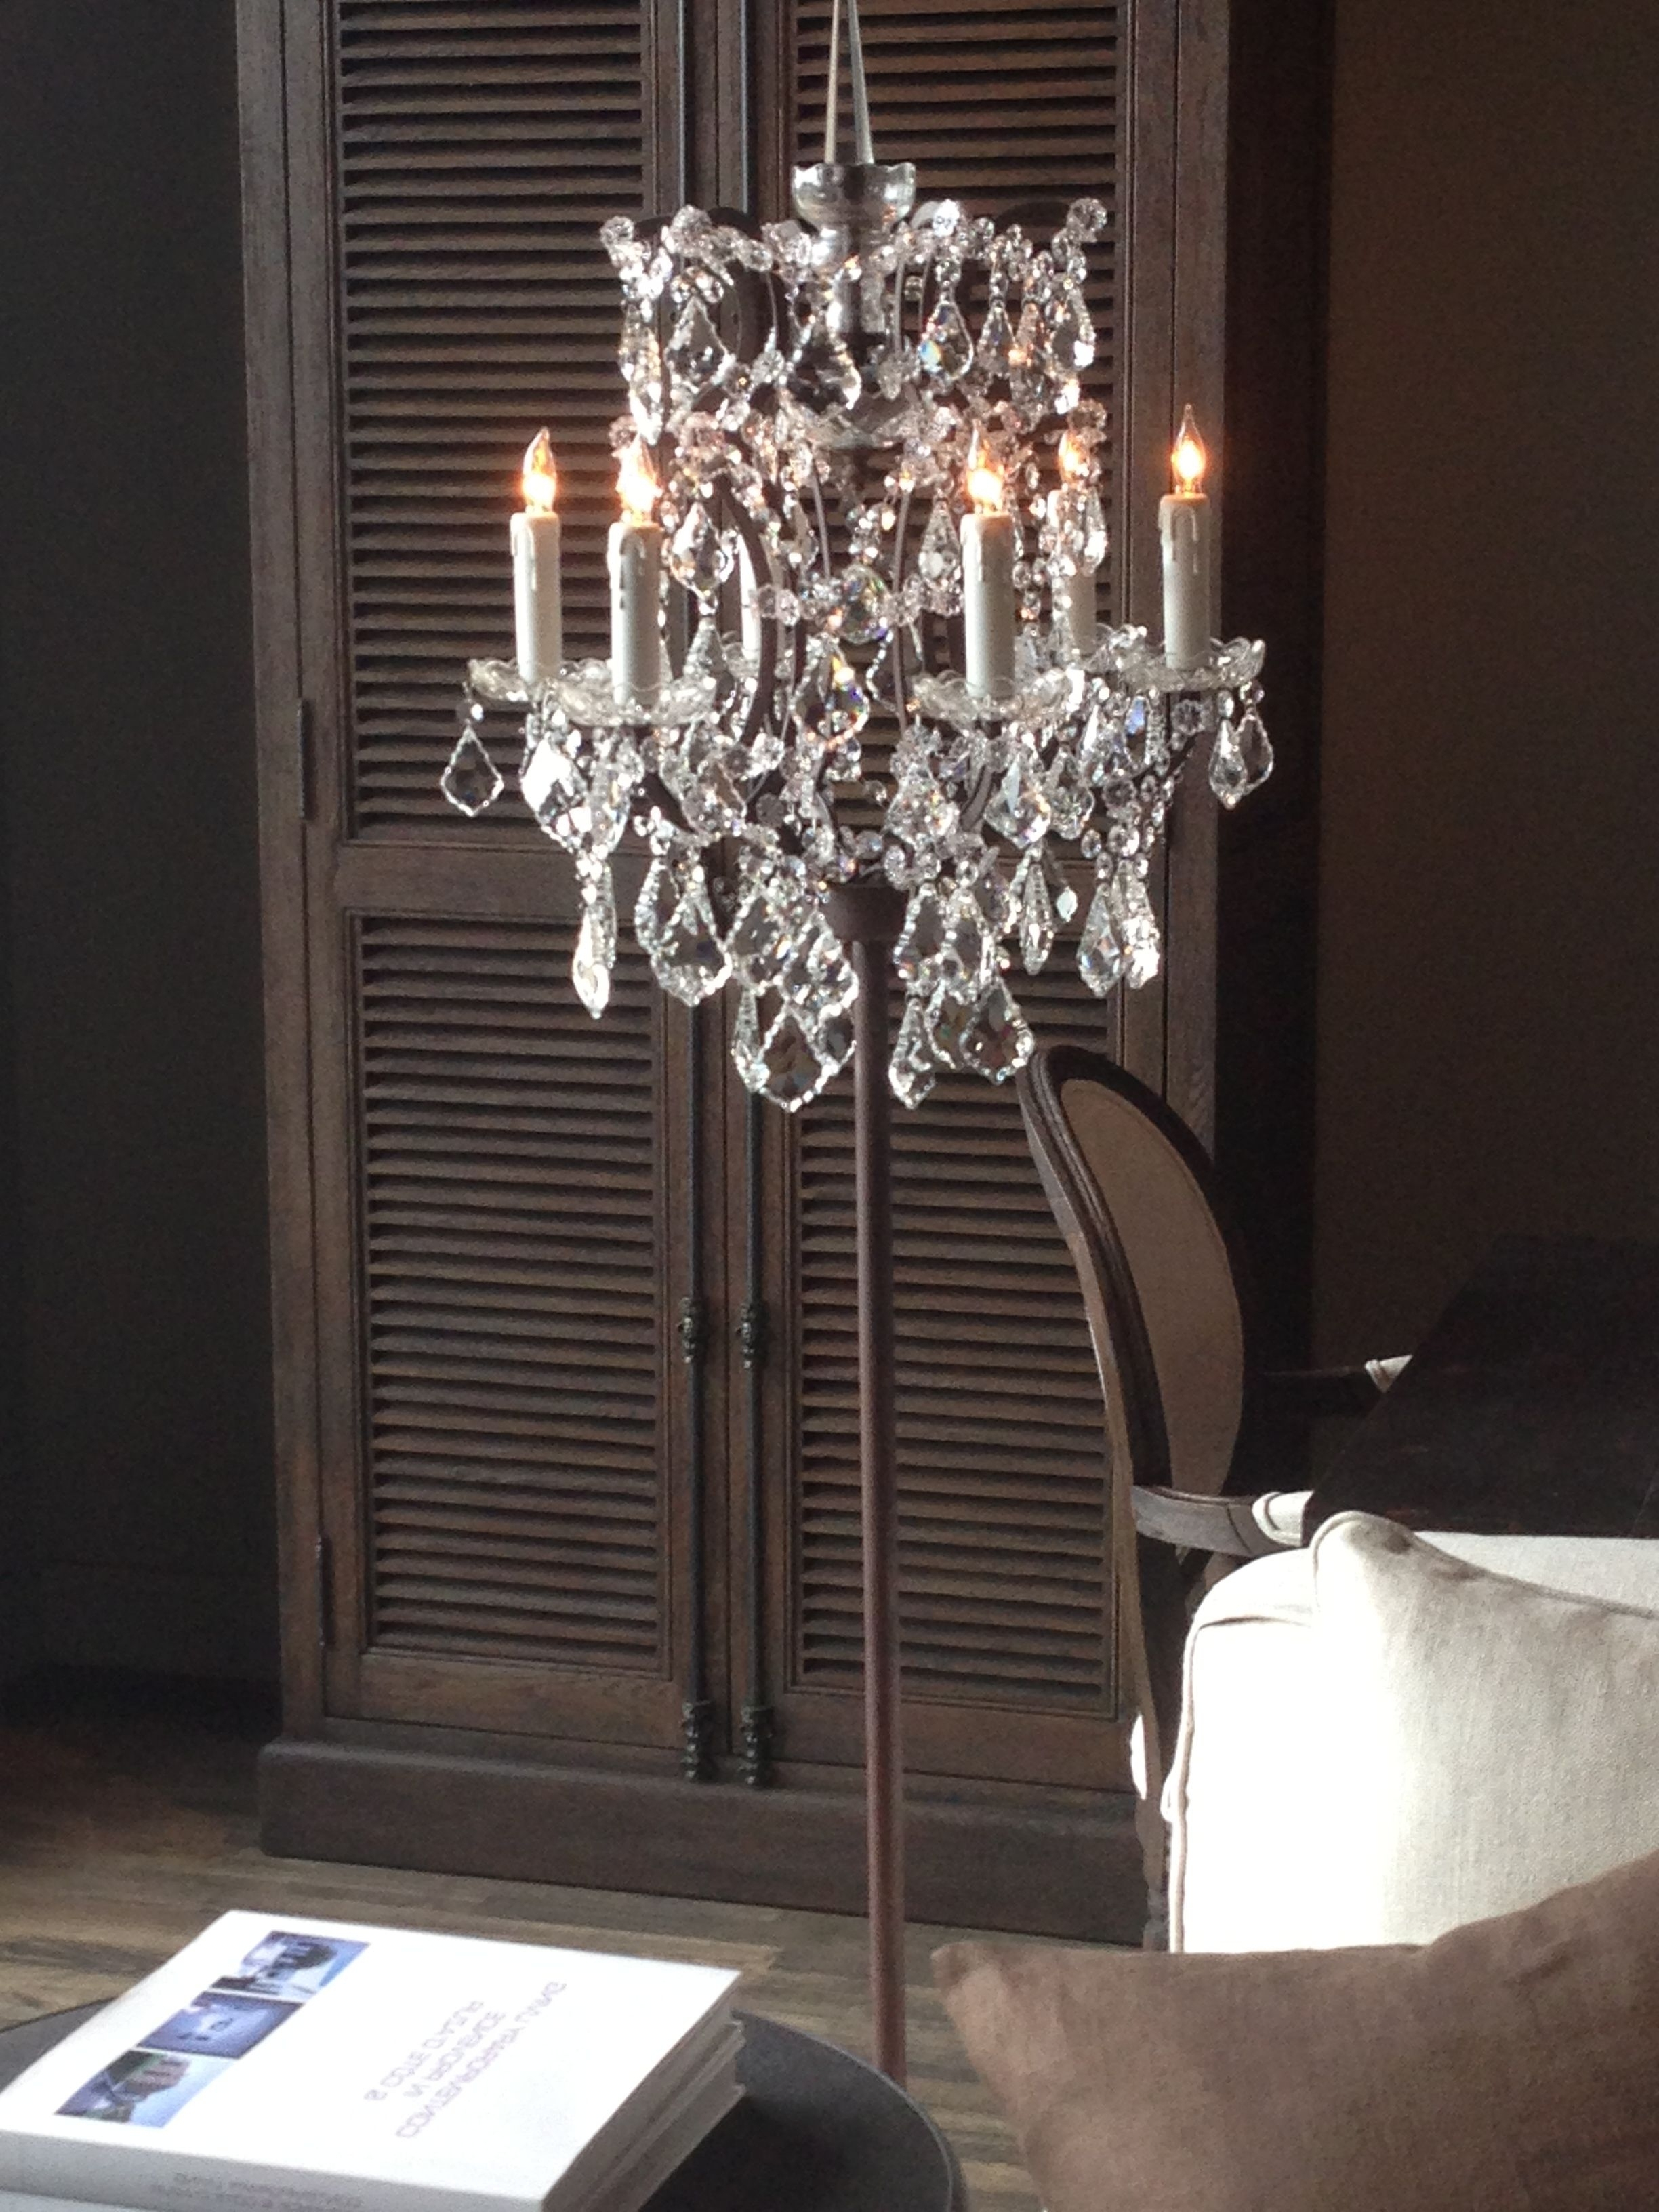 Preferred Chandelier Floor Lamp; I Own This Floor Lamp And It Is So Beautiful With Free Standing Chandelier Lamps (Gallery 14 of 20)